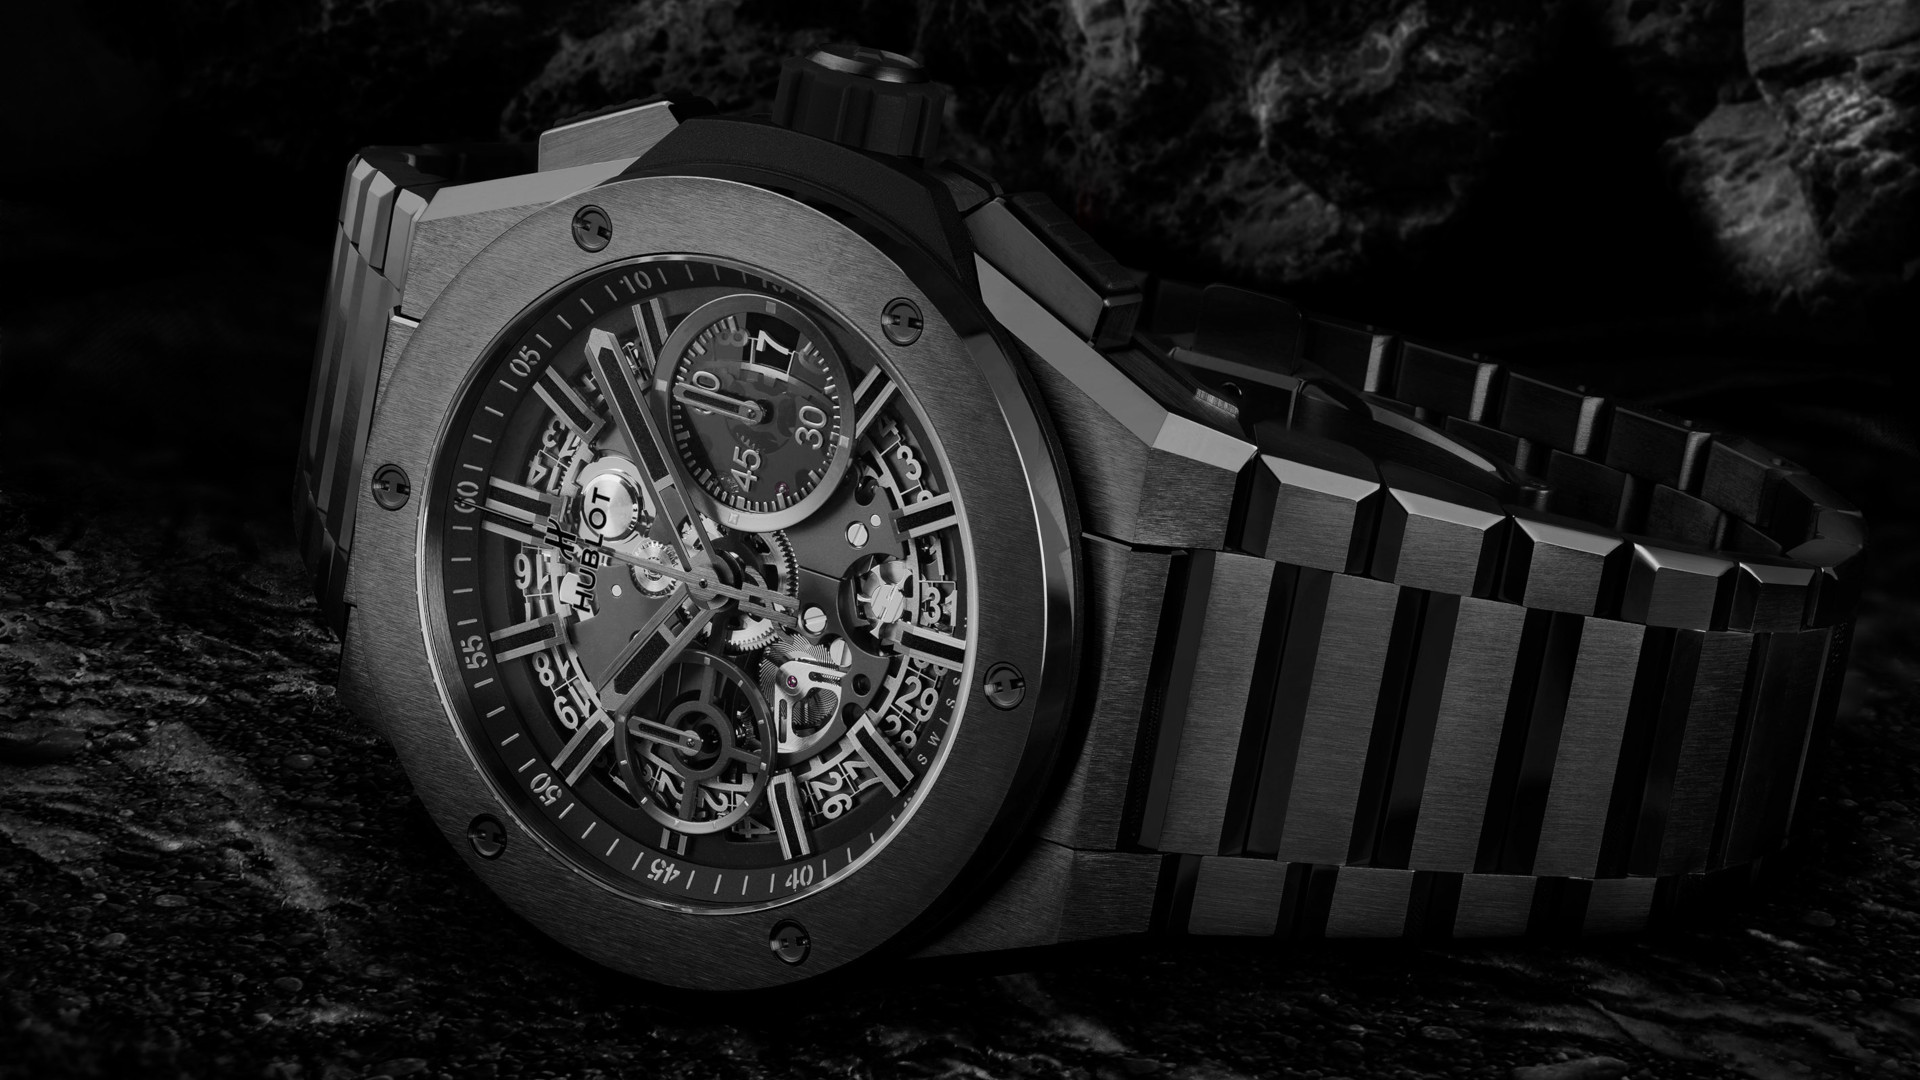 Hublot's take on the sports watch with an integrated bracelet comes in the form of the Big Bang Integral`